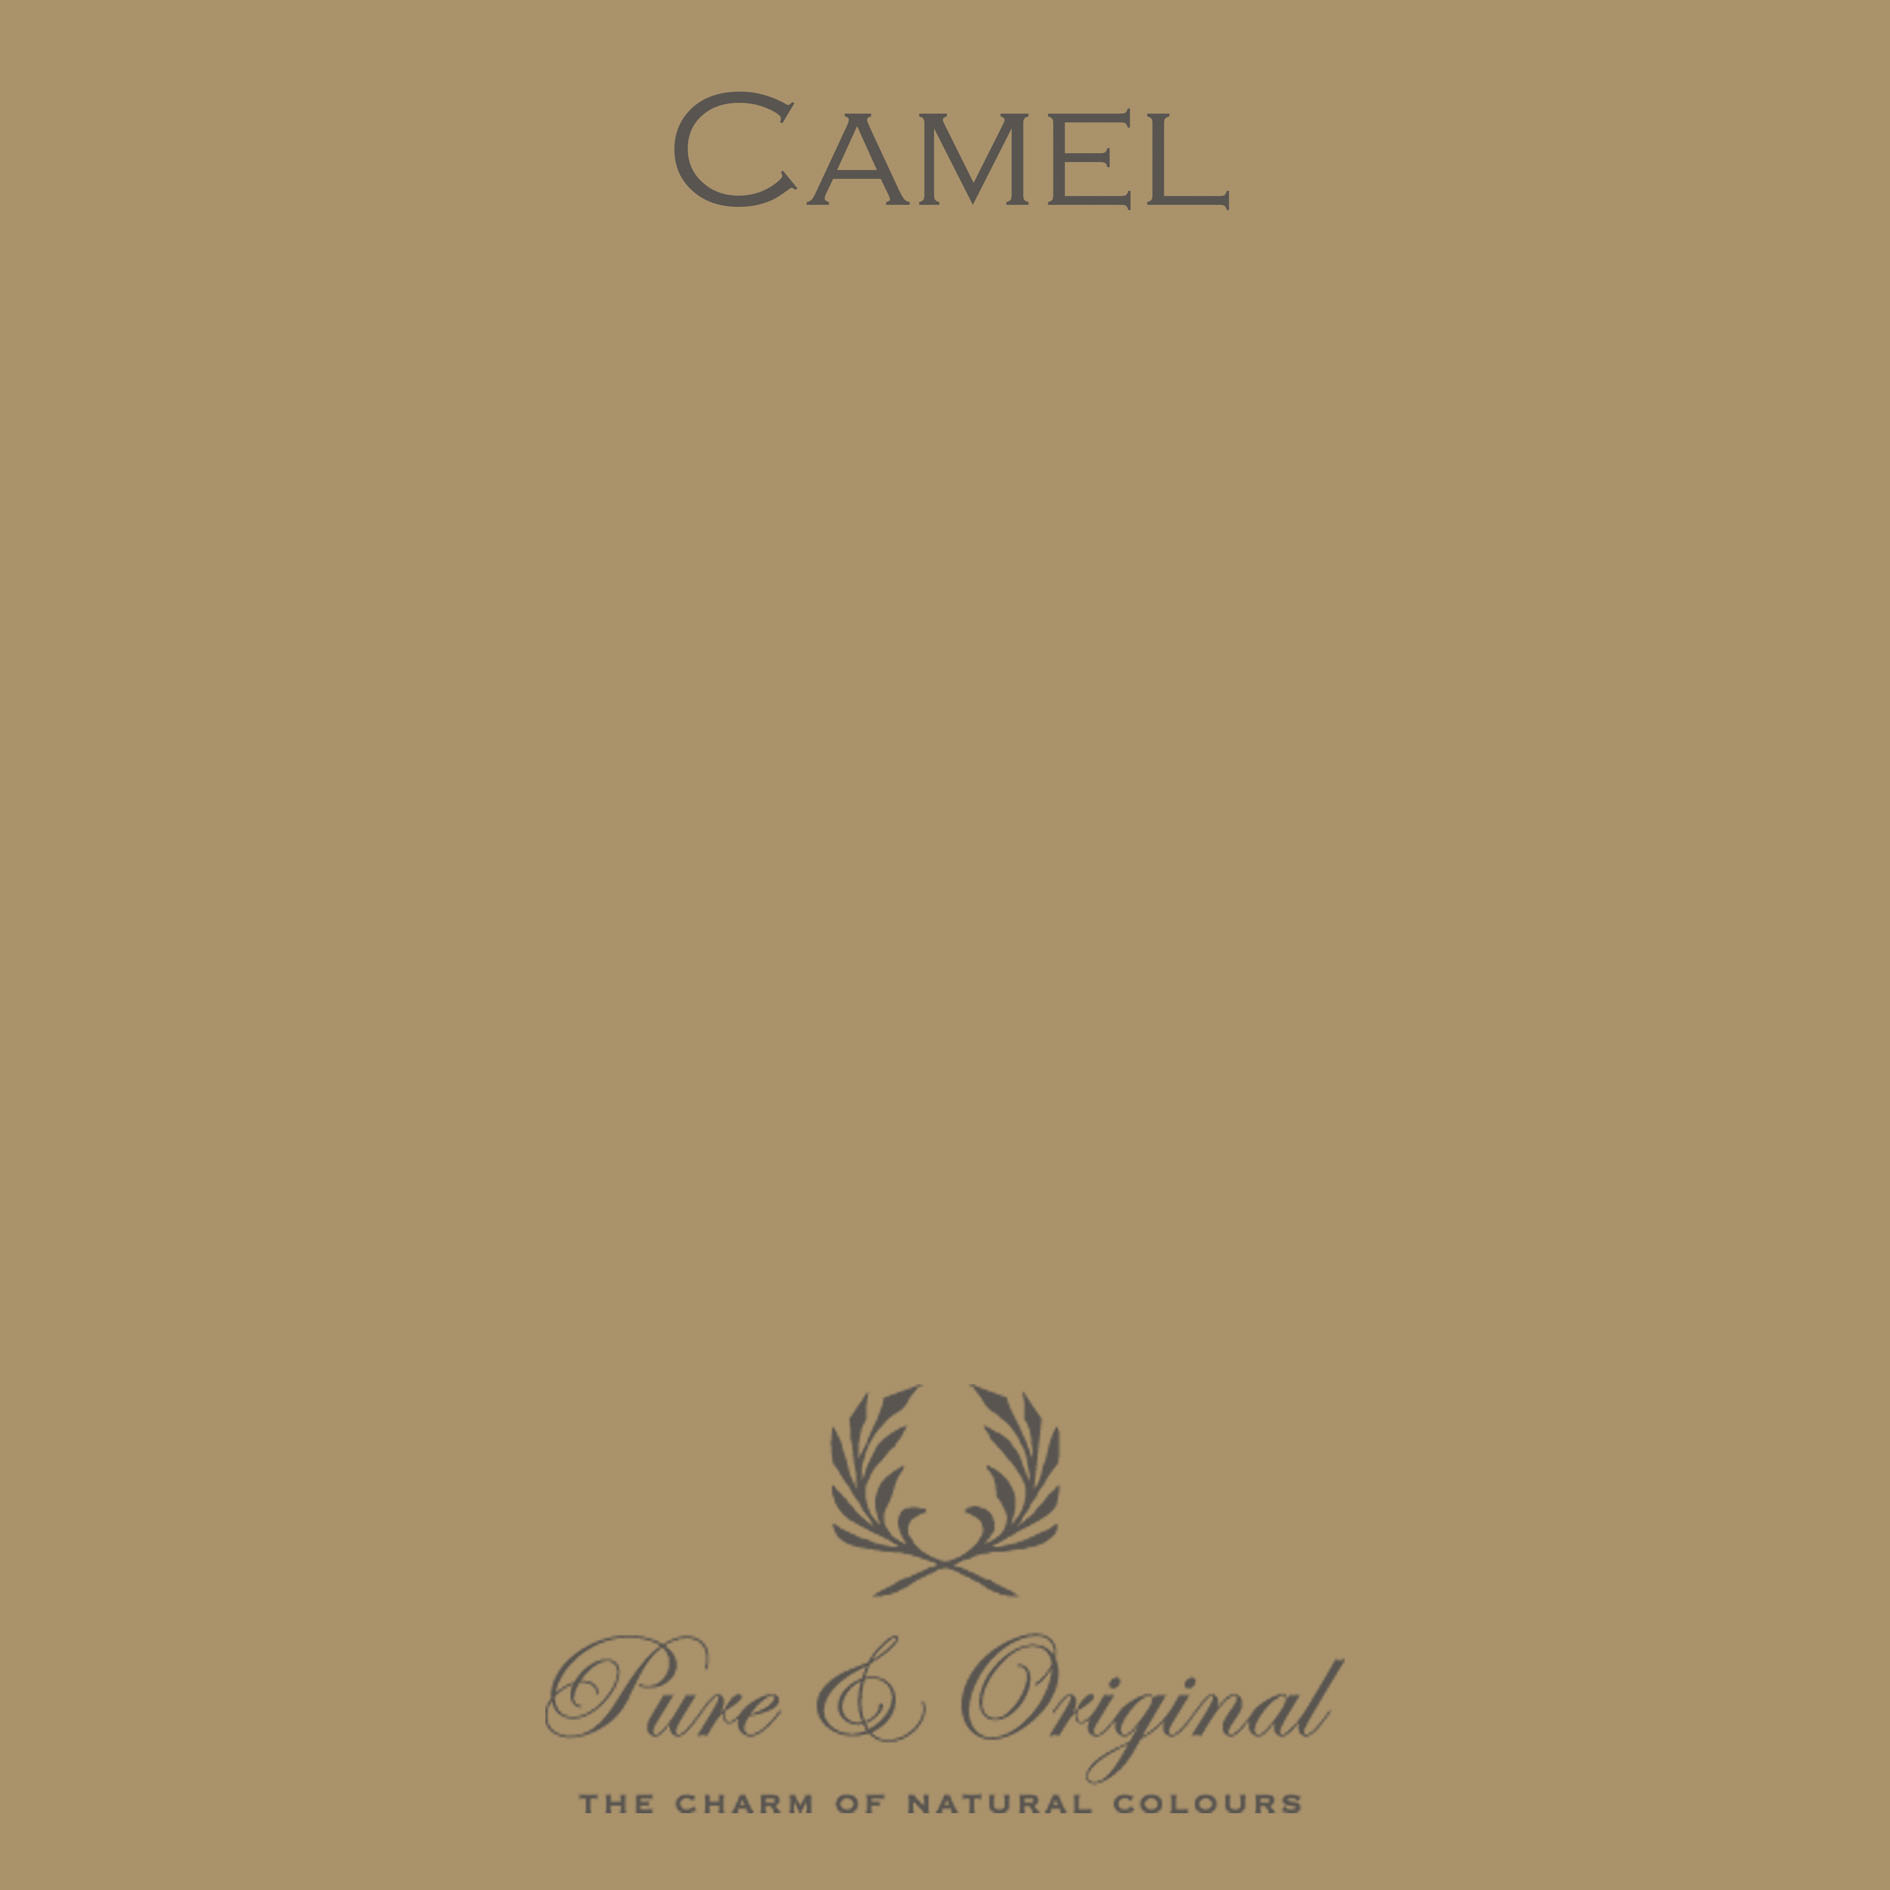 Pure & Original Camel